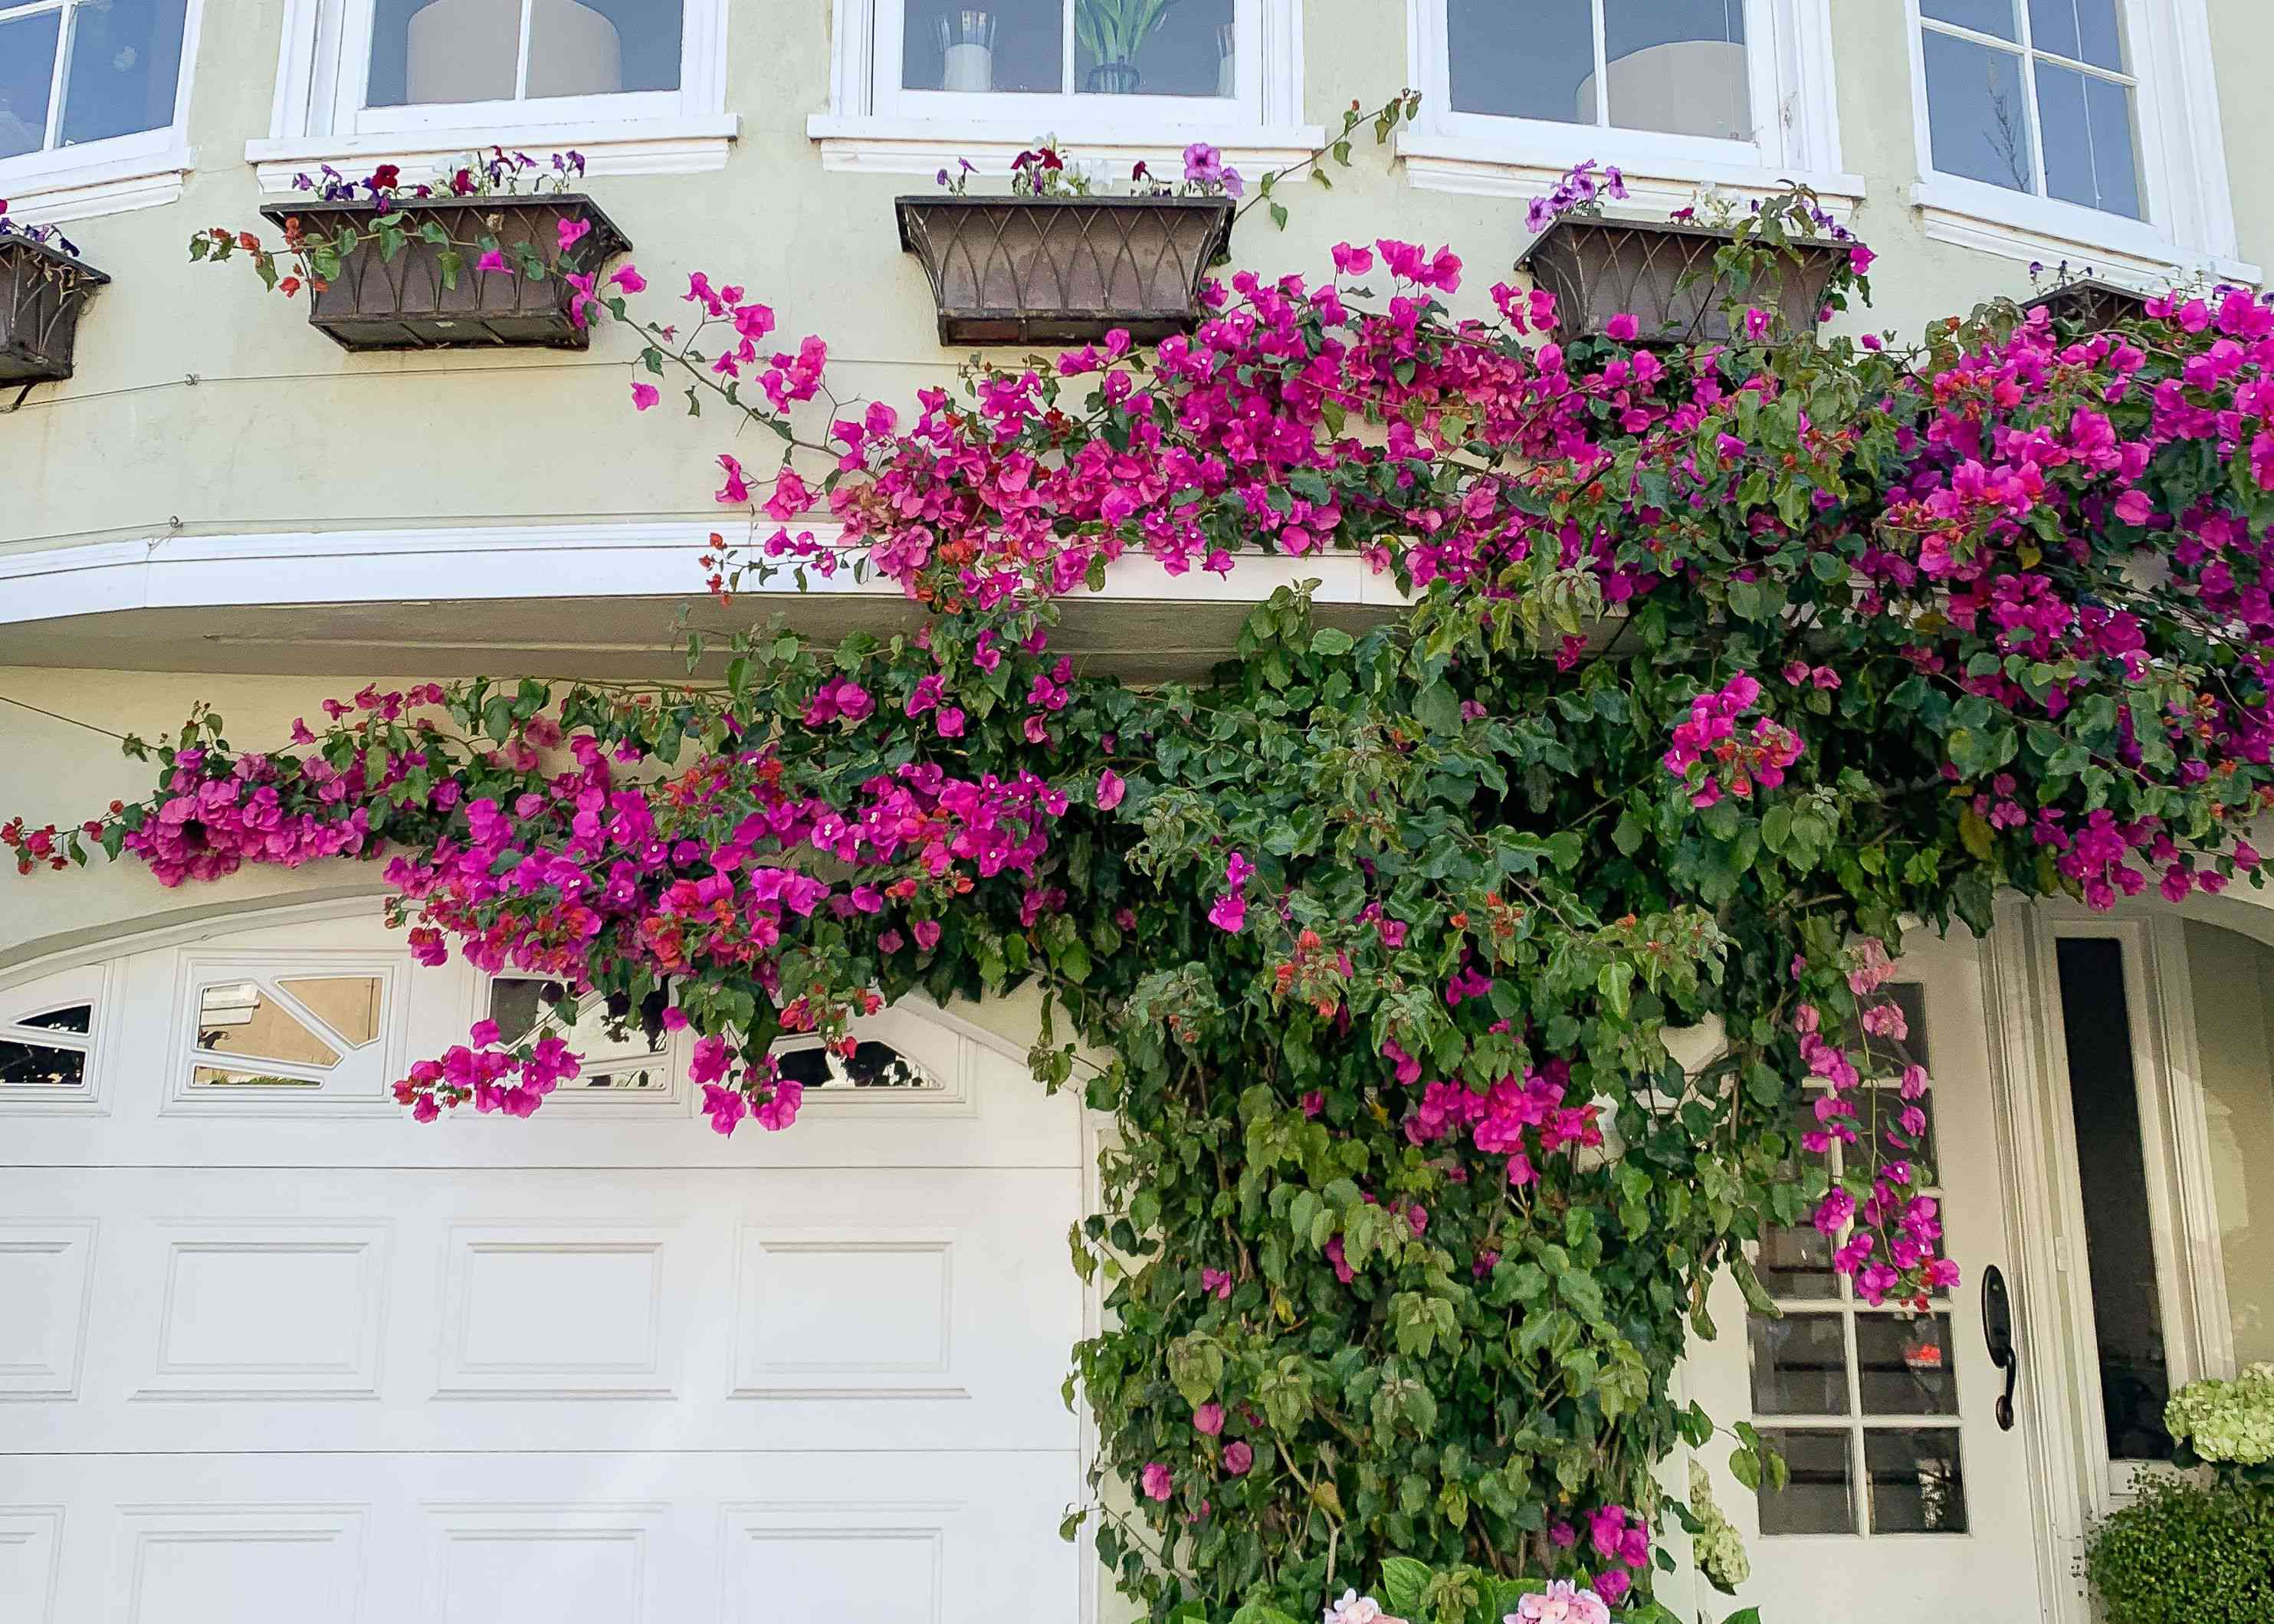 Bougainvillea shrub covering garage front with deep pink flowers on vines